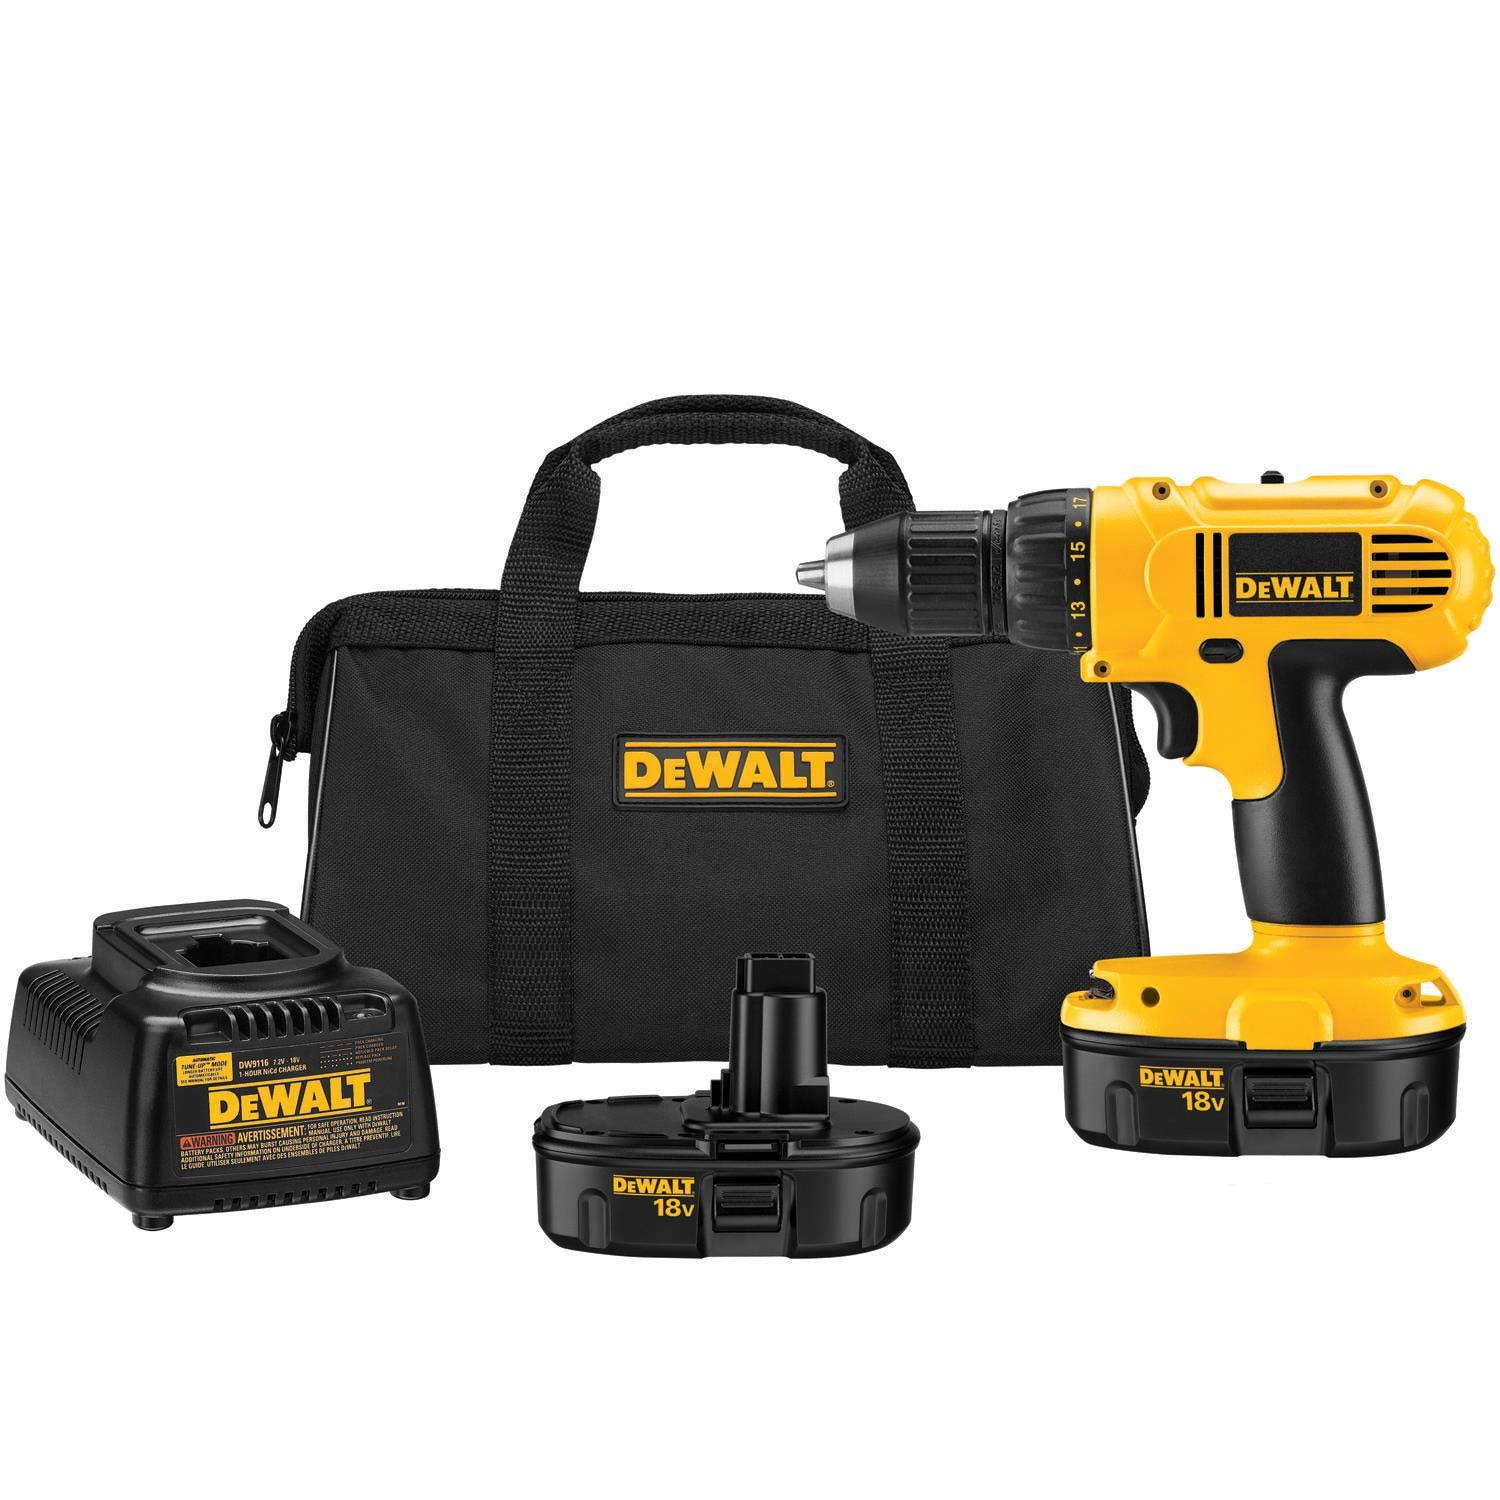 DEWALT - 18 V 1/2 in. (13mm) Cordless Compact Drill/Driver Kit